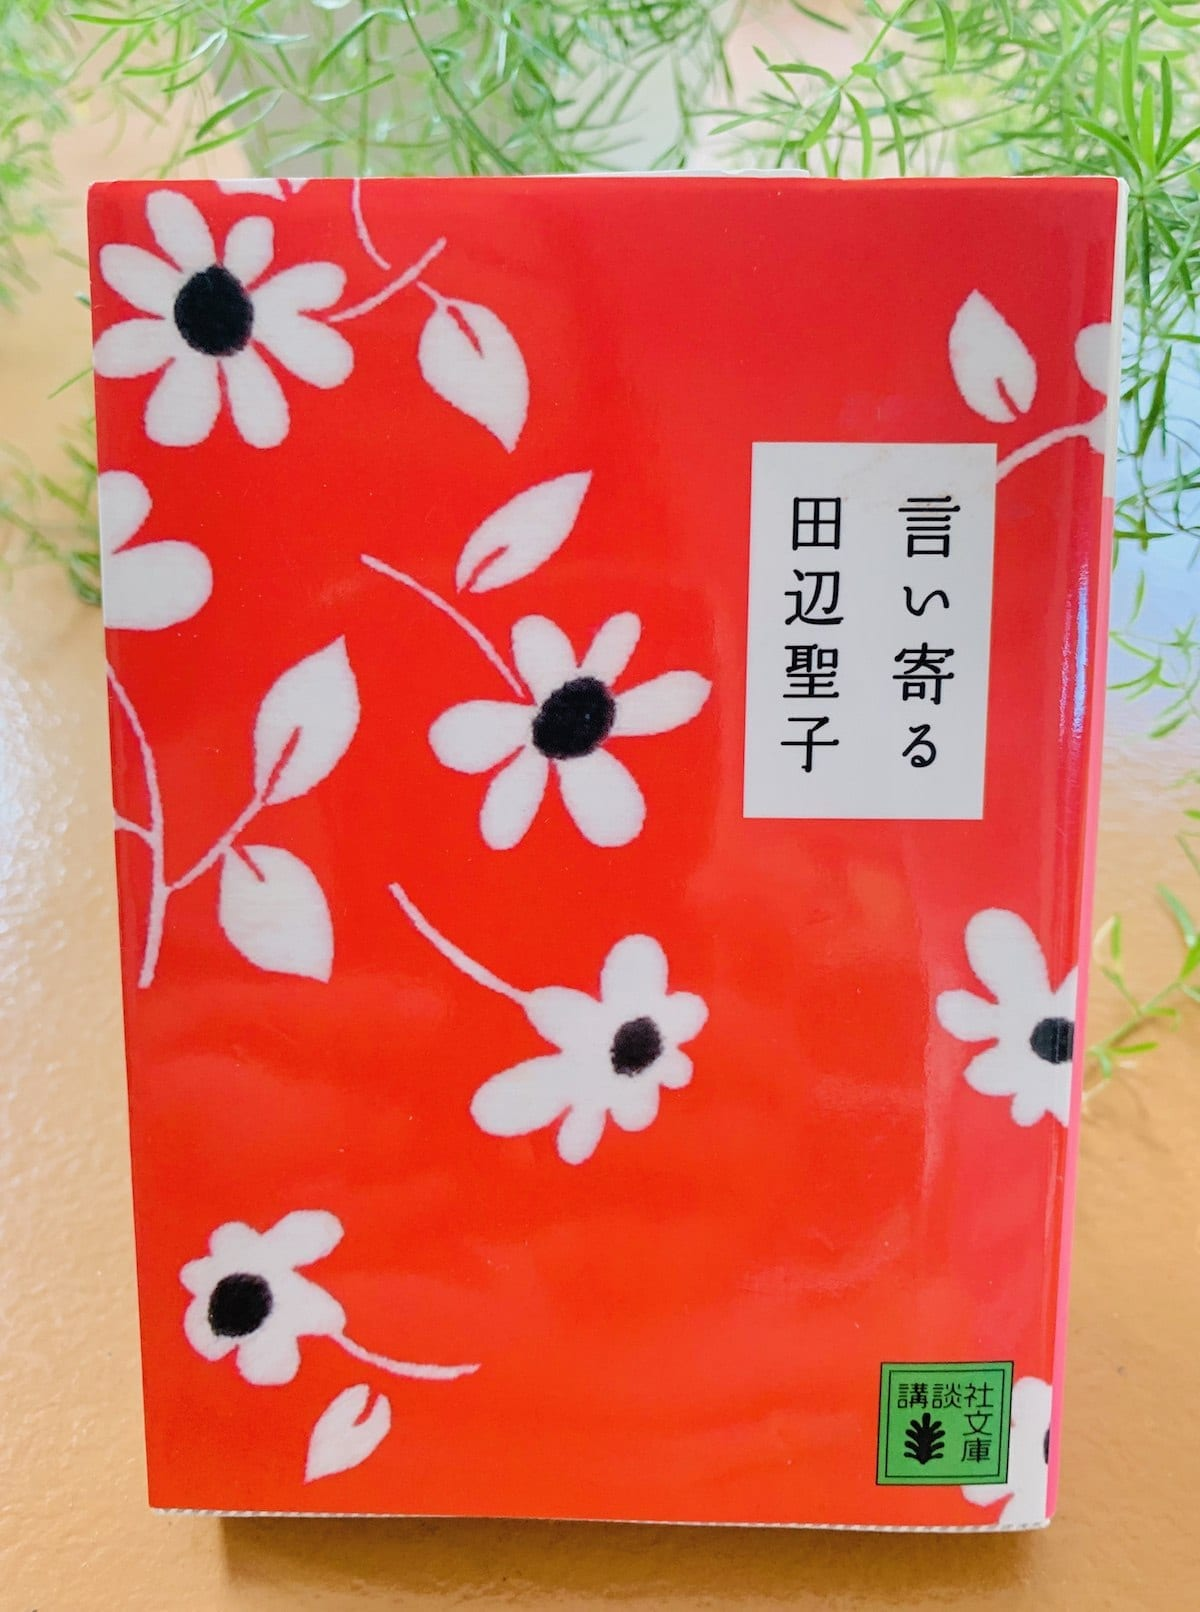 This English excerpt from Iiyoru was translated from this Tanabe Seiko book